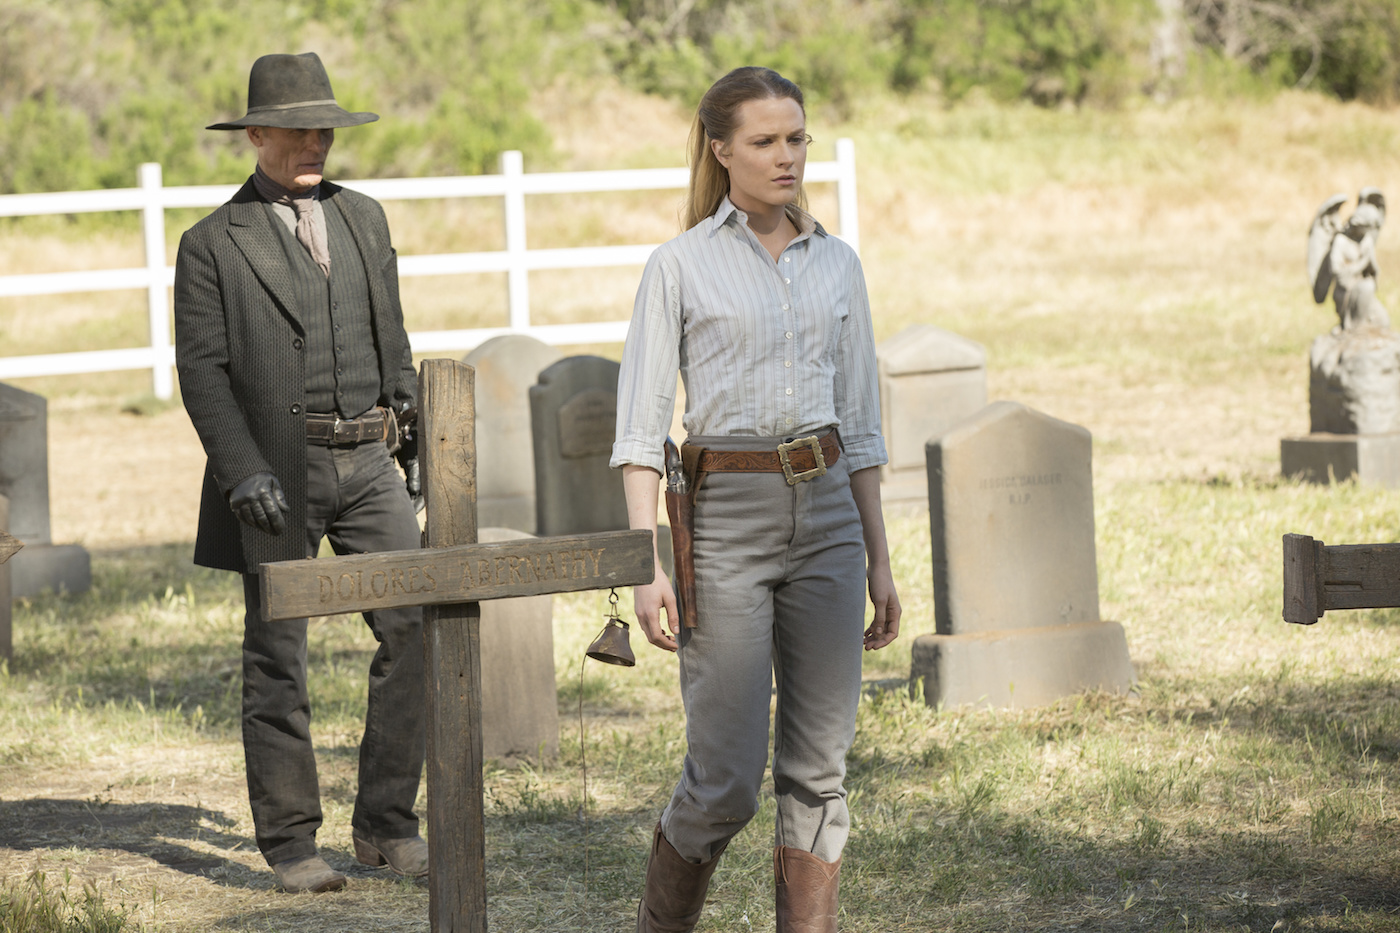 Westworld's Hosts and the Imago Dei